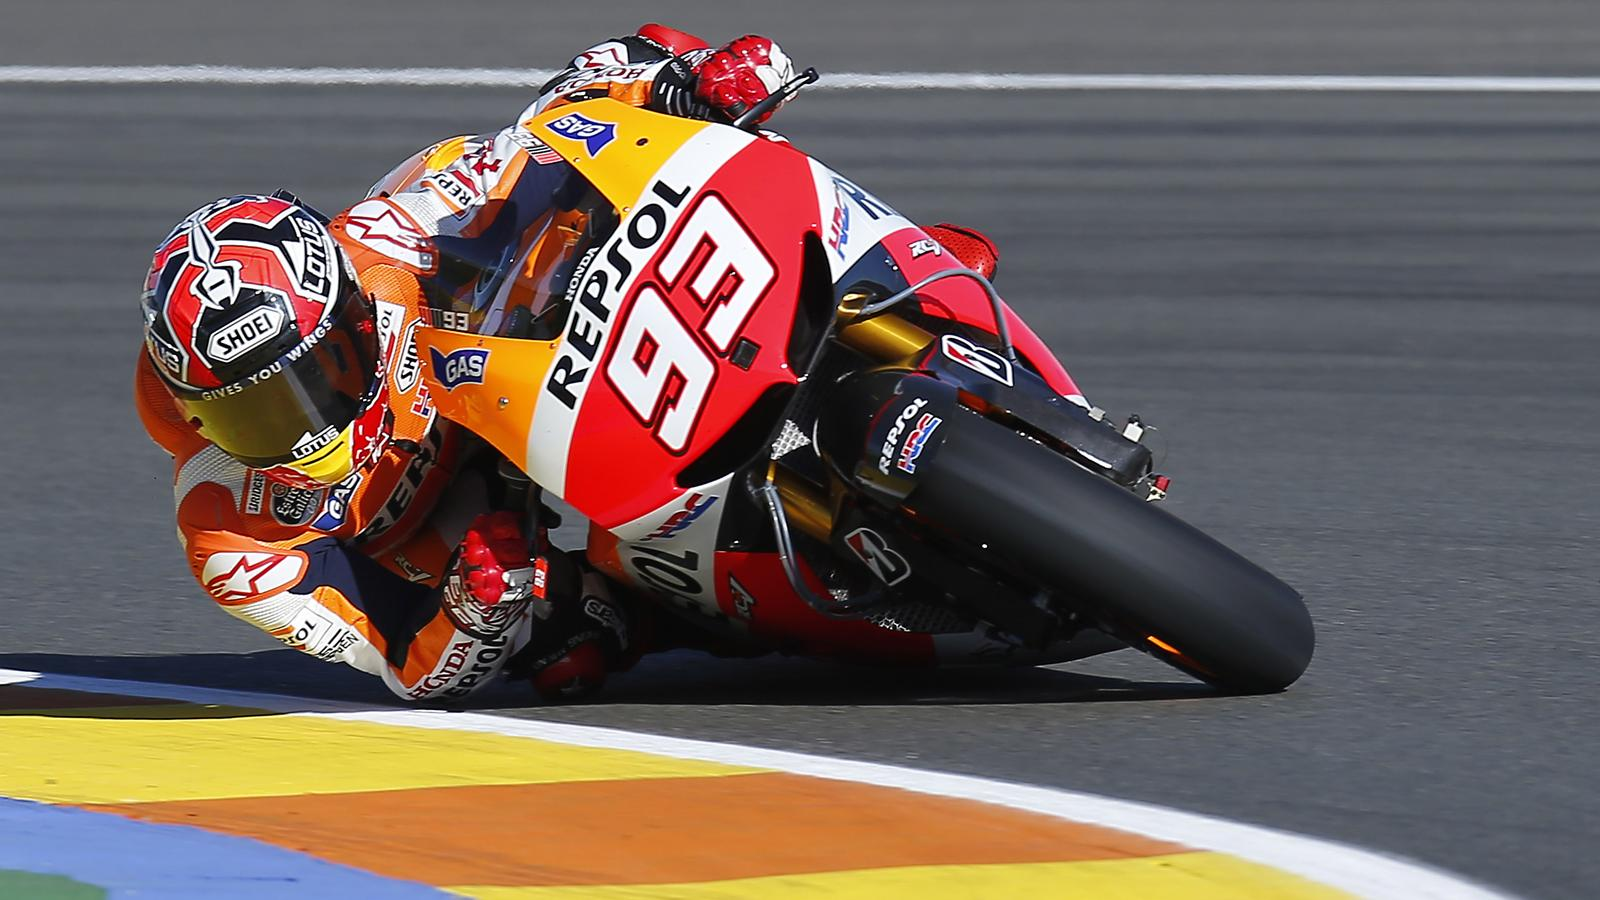 LCR aims for two MotoGP bikes by 2015 - Motorcycling - Eurosport Australia